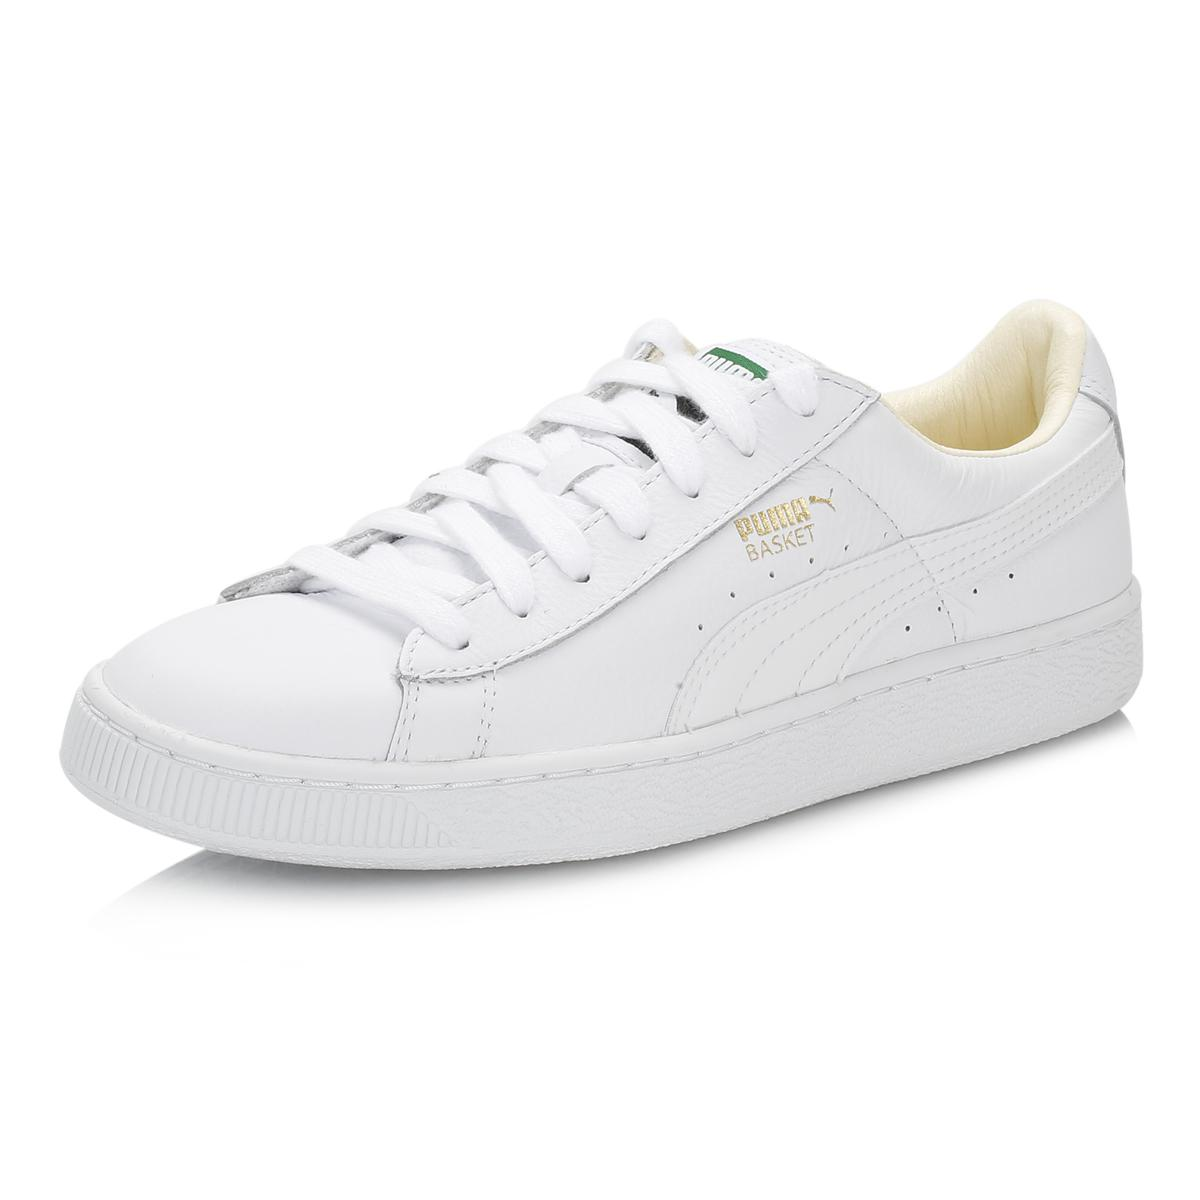 1a0080a86e46 PUMA - Mens White Basket Classic Leather Trainers for Men - Lyst. View  fullscreen